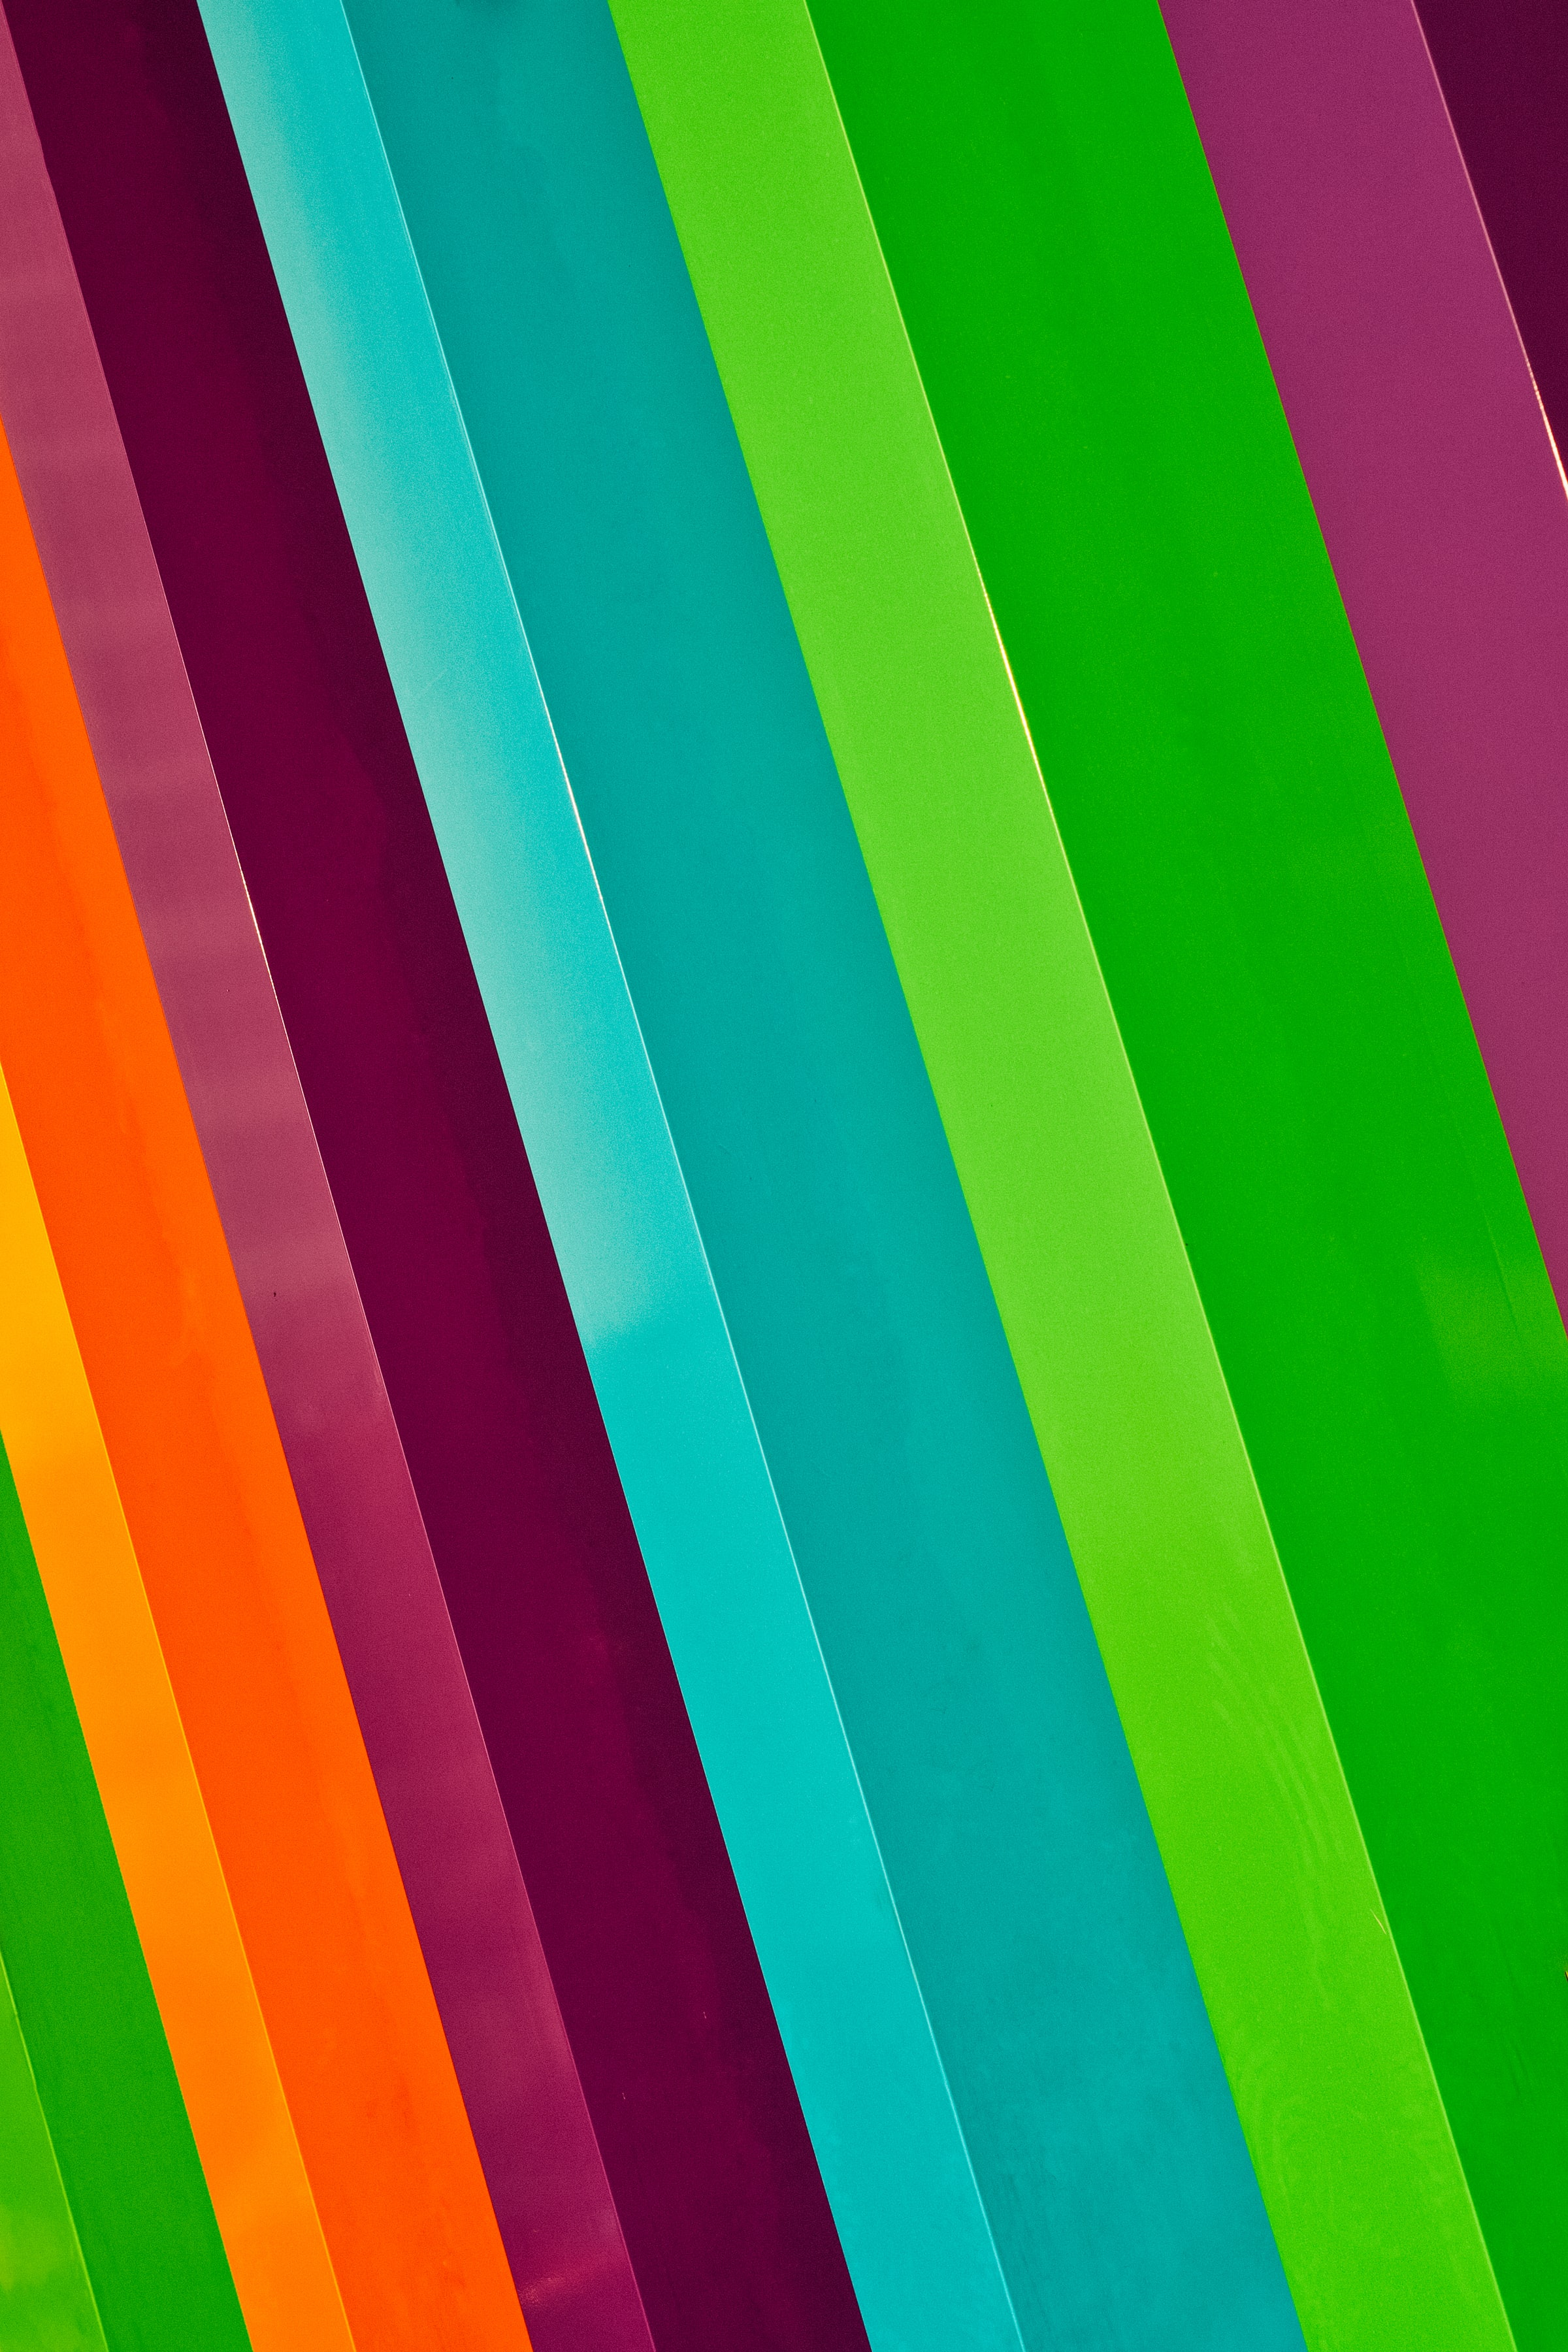 71916 free wallpaper 1440x2560 for phone, download images Abstract, Bright, Multicolored, Motley, Lines, Stripes, Streaks, Diagonal 1440x2560 for mobile